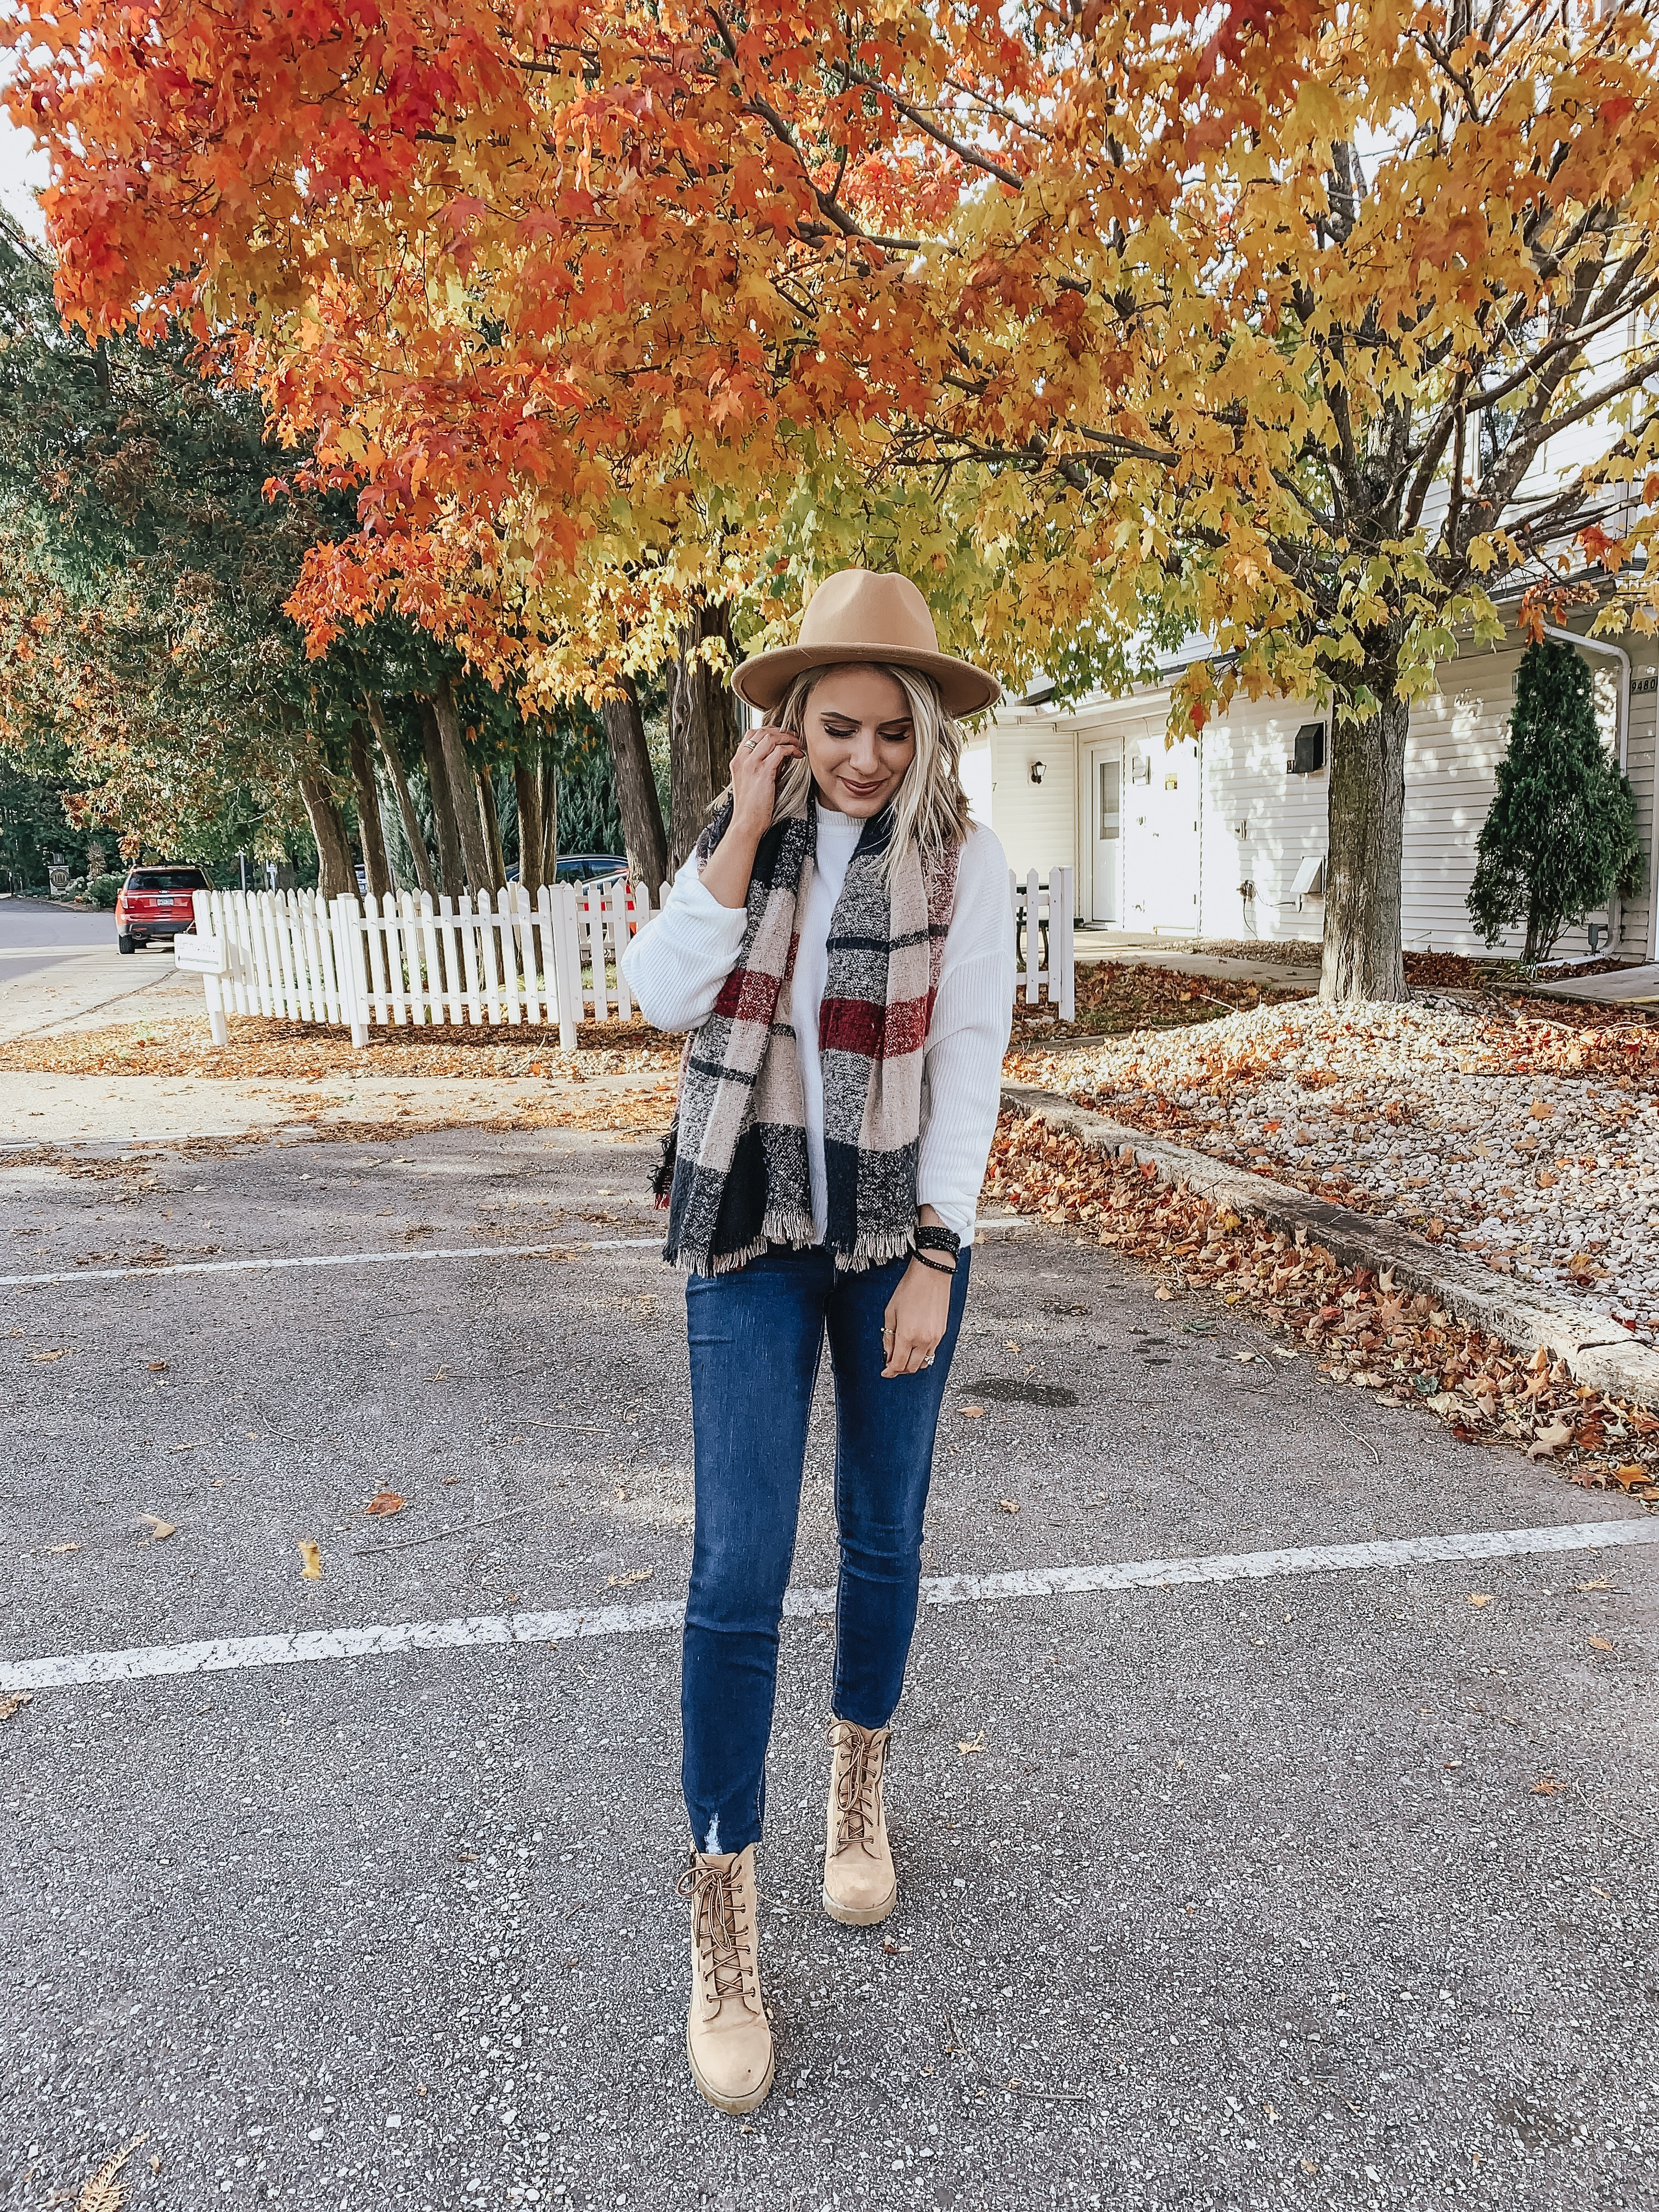 Affordable Sweaters under $30 | Style Blogger Lauren Meyer shares her Cute Fall Sweaters under $30 from Walmart